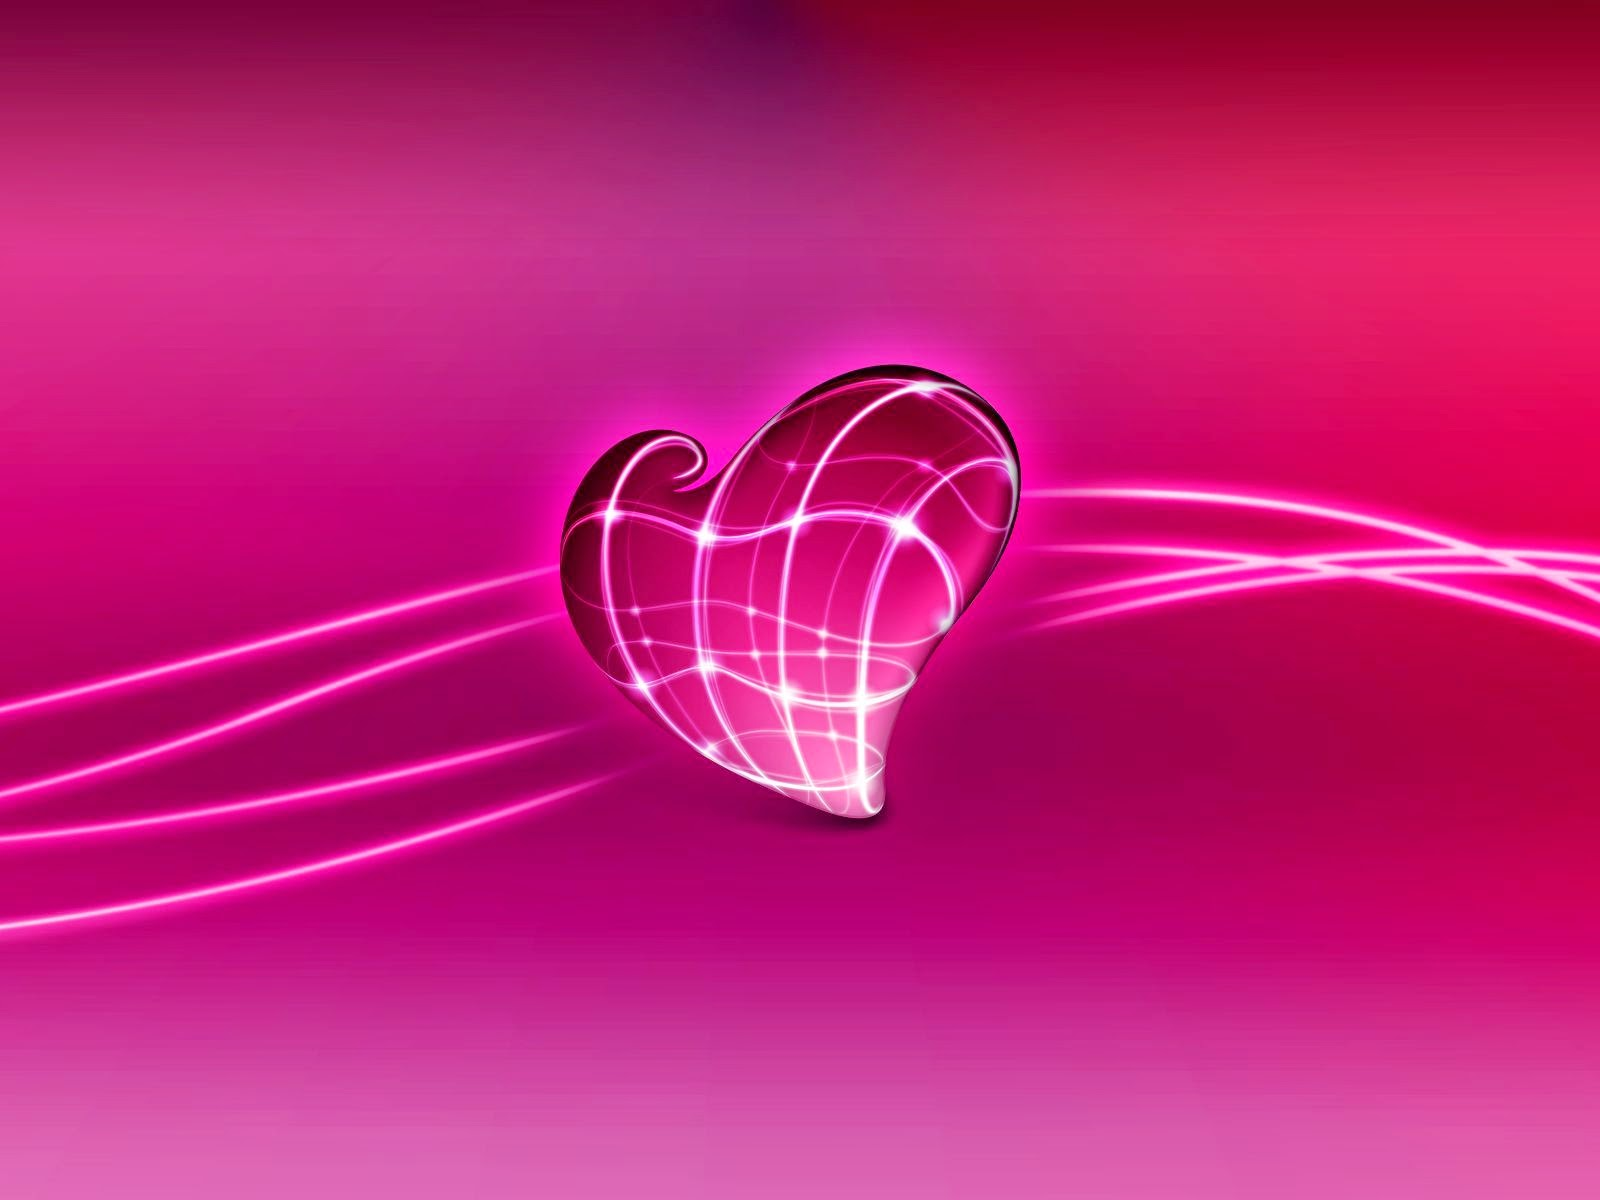 Skitch-wallpaper-pink-1600x1200-png